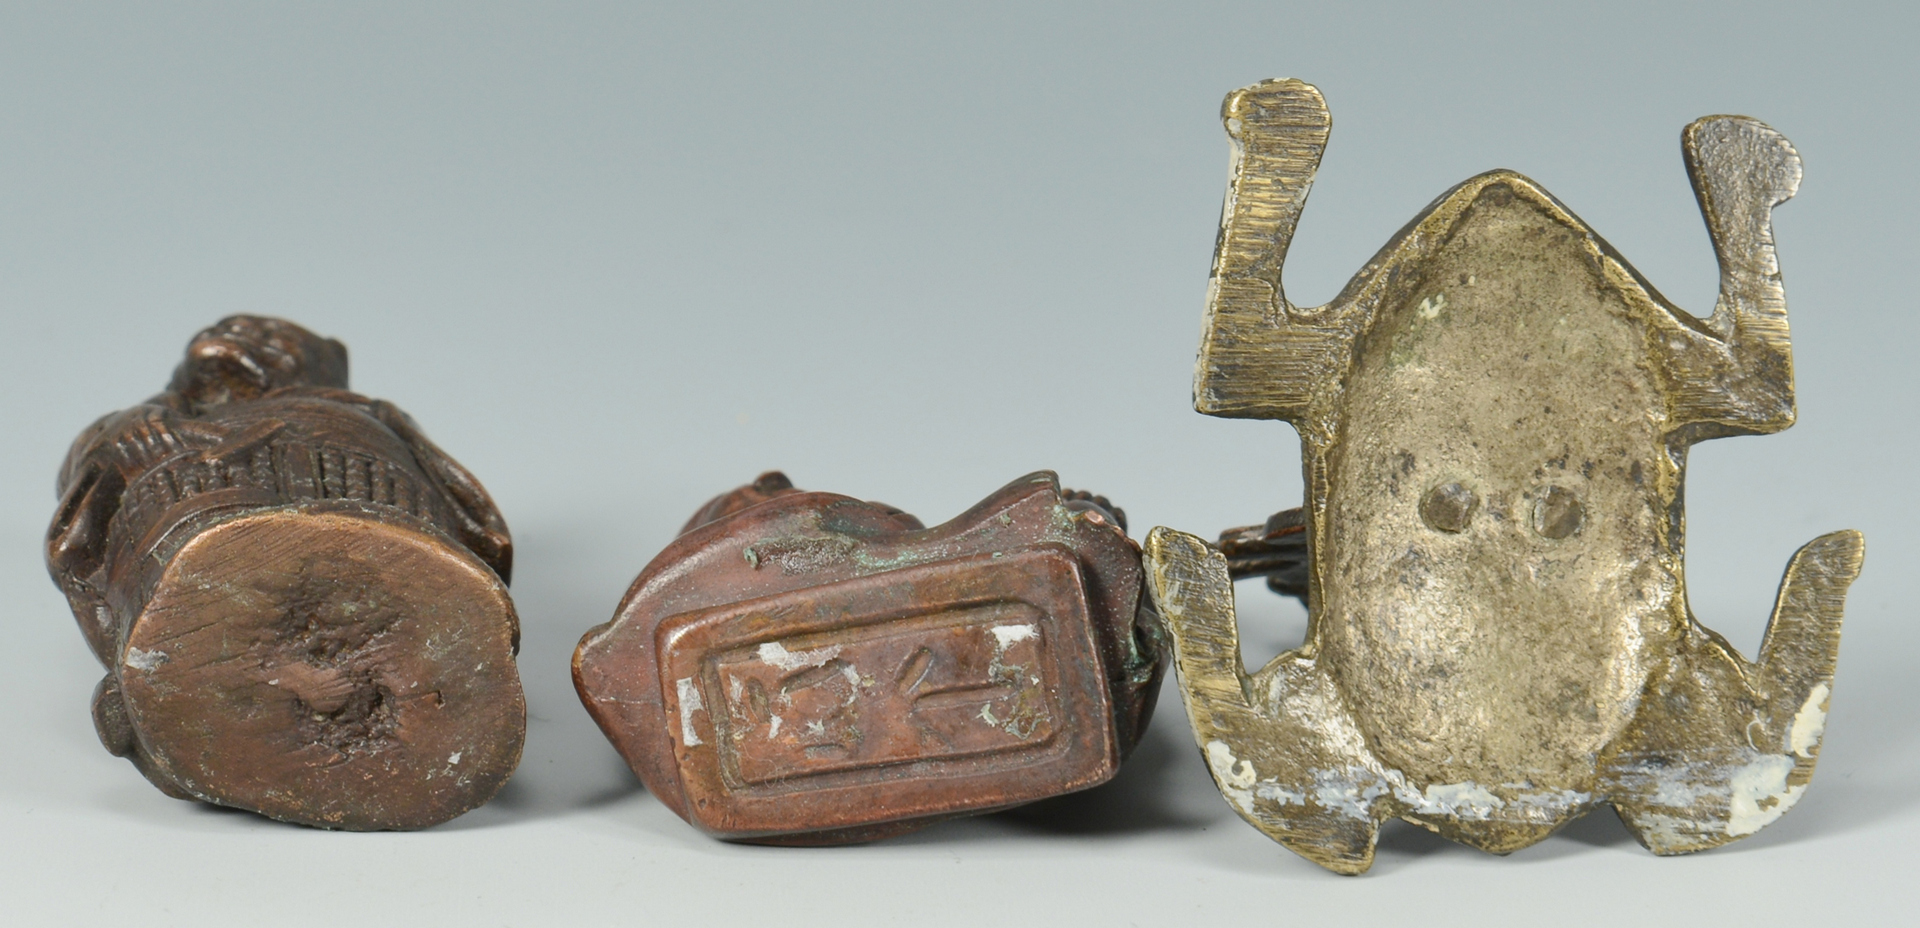 Lot 3088138: 5 Small Decorative Bronze Asian Items